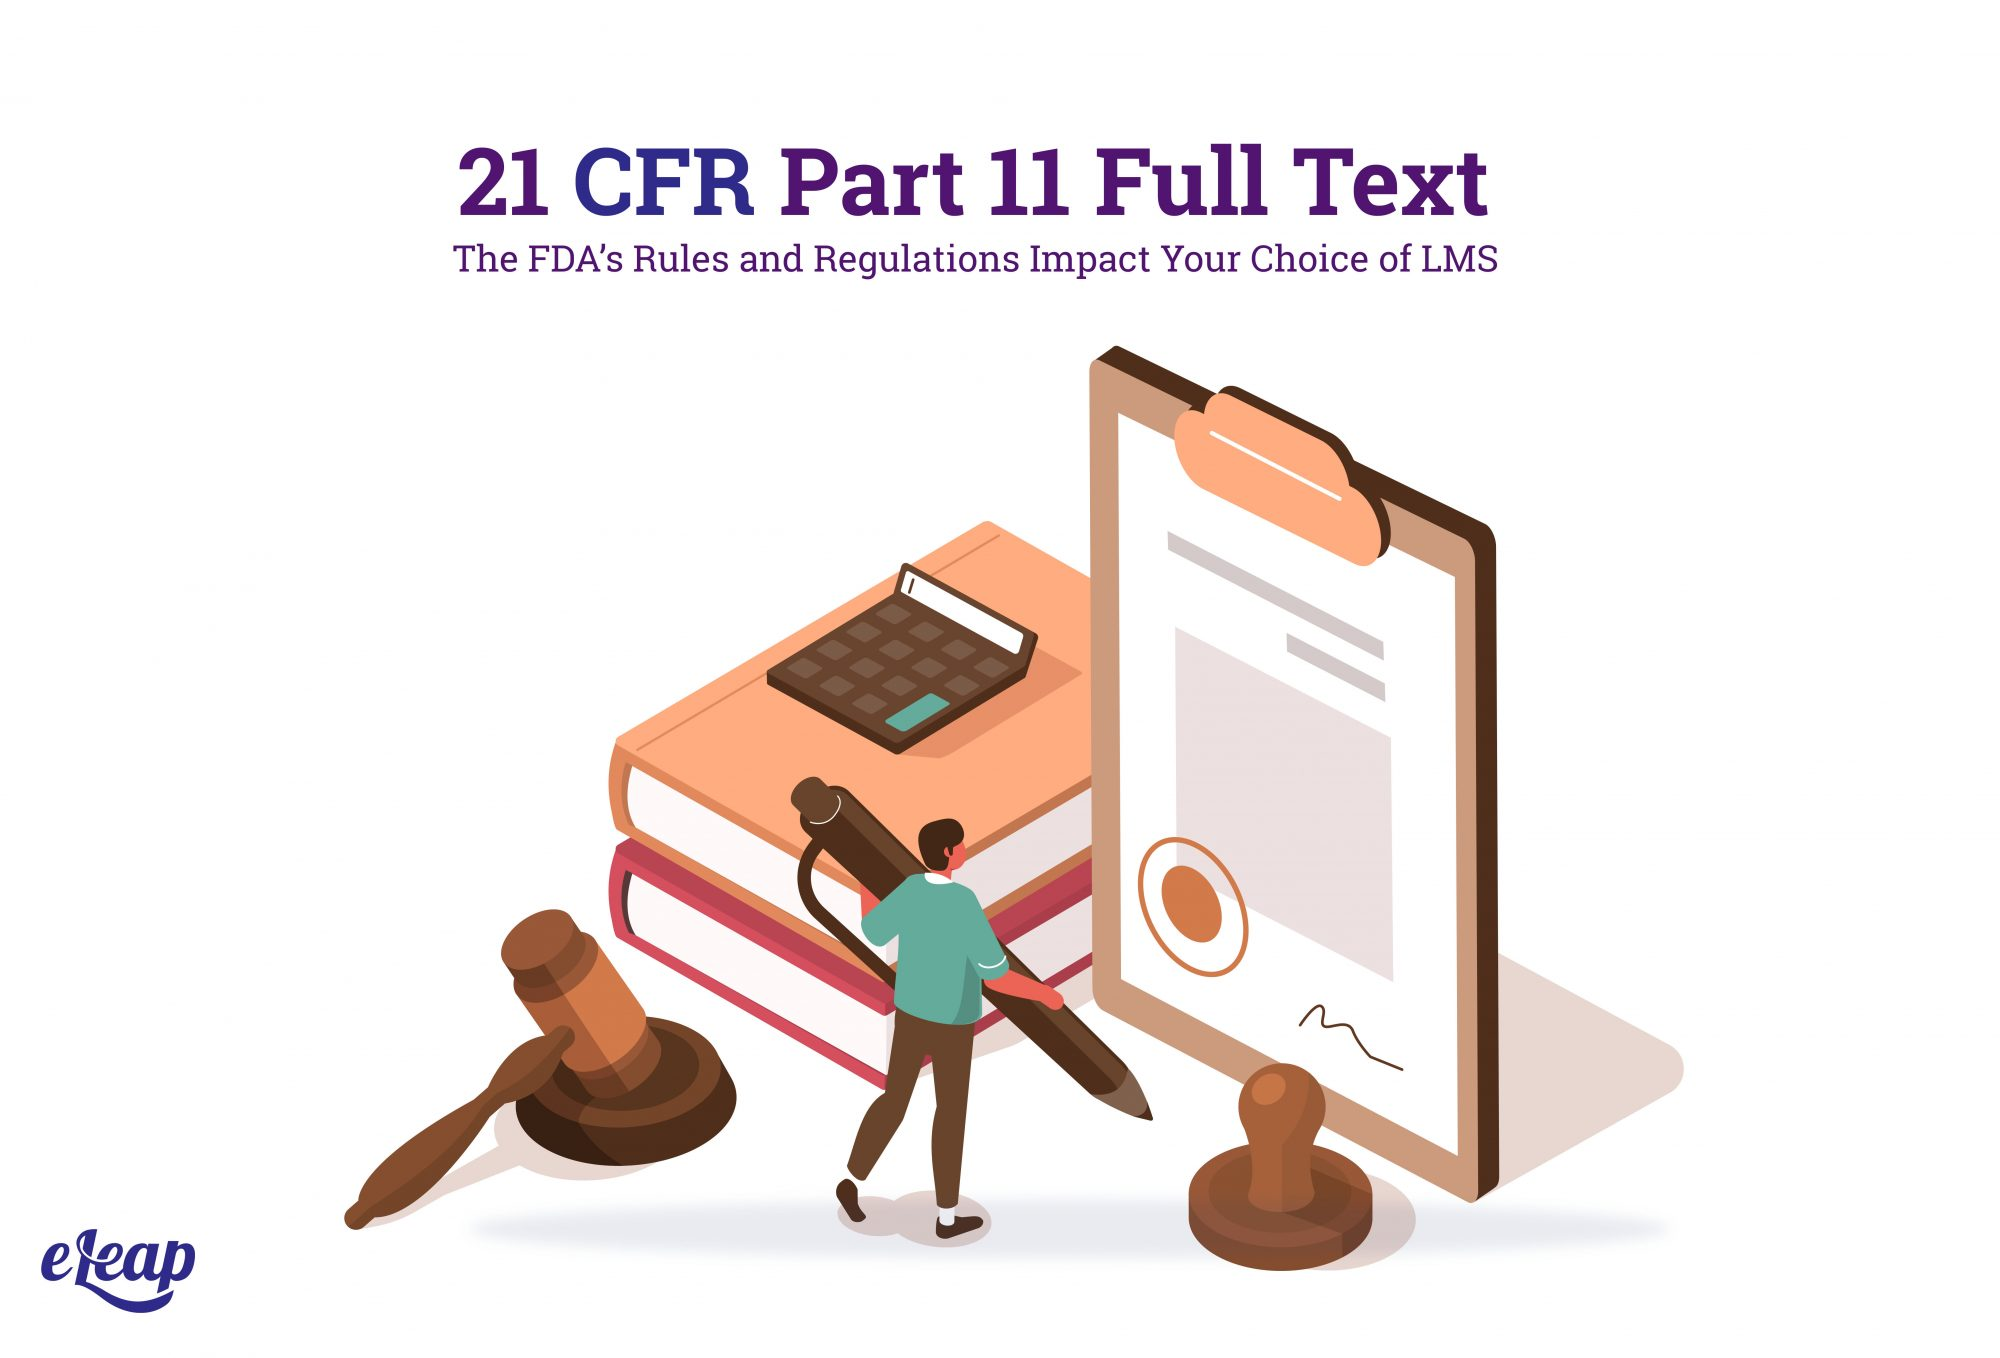 21 CFR Part 11 Full Text